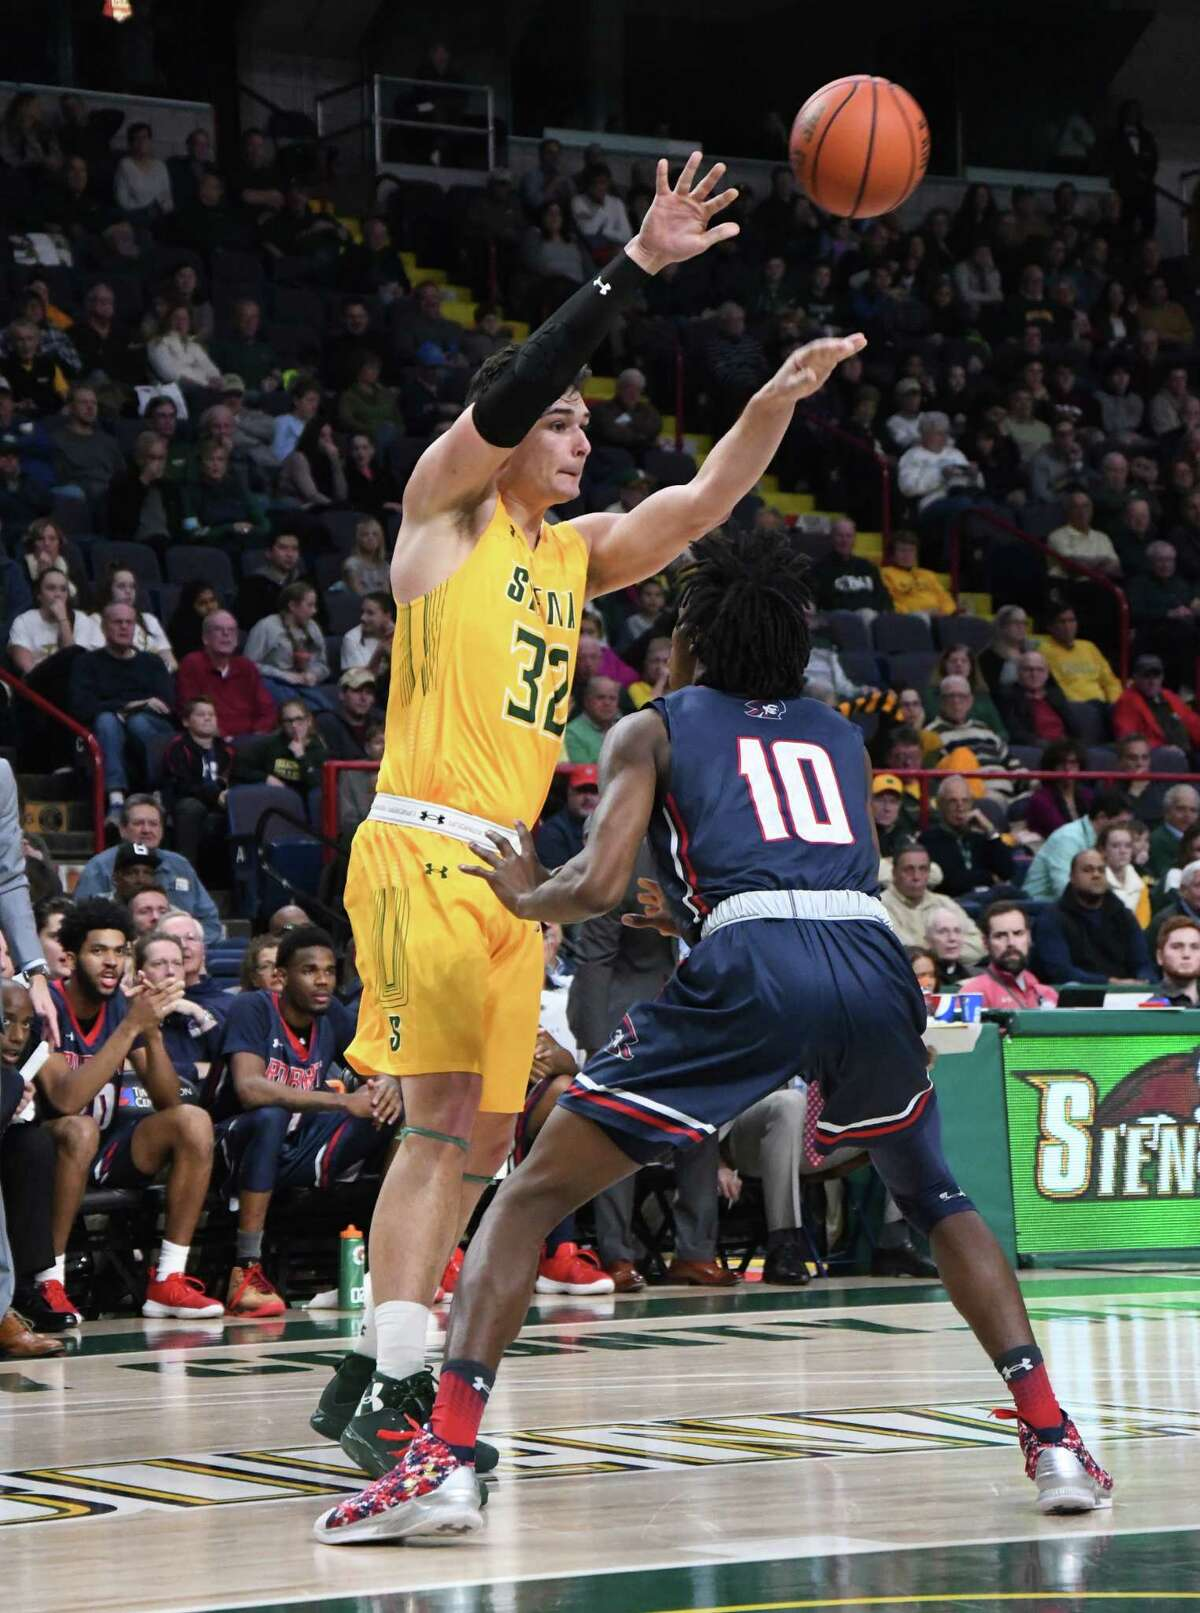 Siena forward Evan Fisher passes the ball to a teammate during a non-conference game against Robert Morris on Saturday at the Times Union Center in Albany. Siena beat Robert Morris 76-74. (Jenn March/Special to the Times Union)